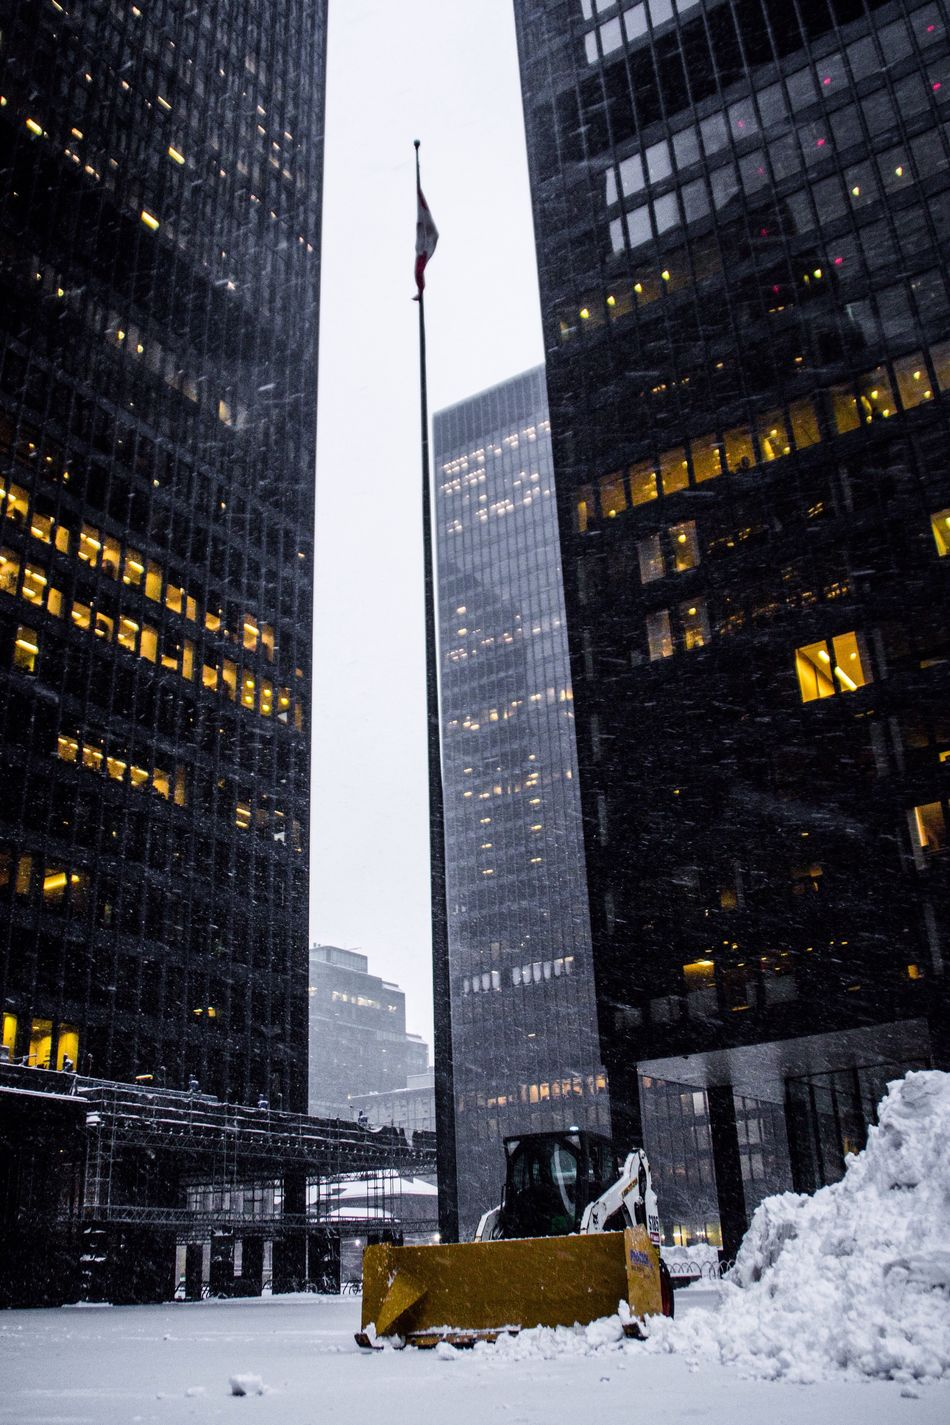 Architecture Built Structure City Building Exterior Snow Winter Outdoors Skyscraper Cold Temperature No People Day